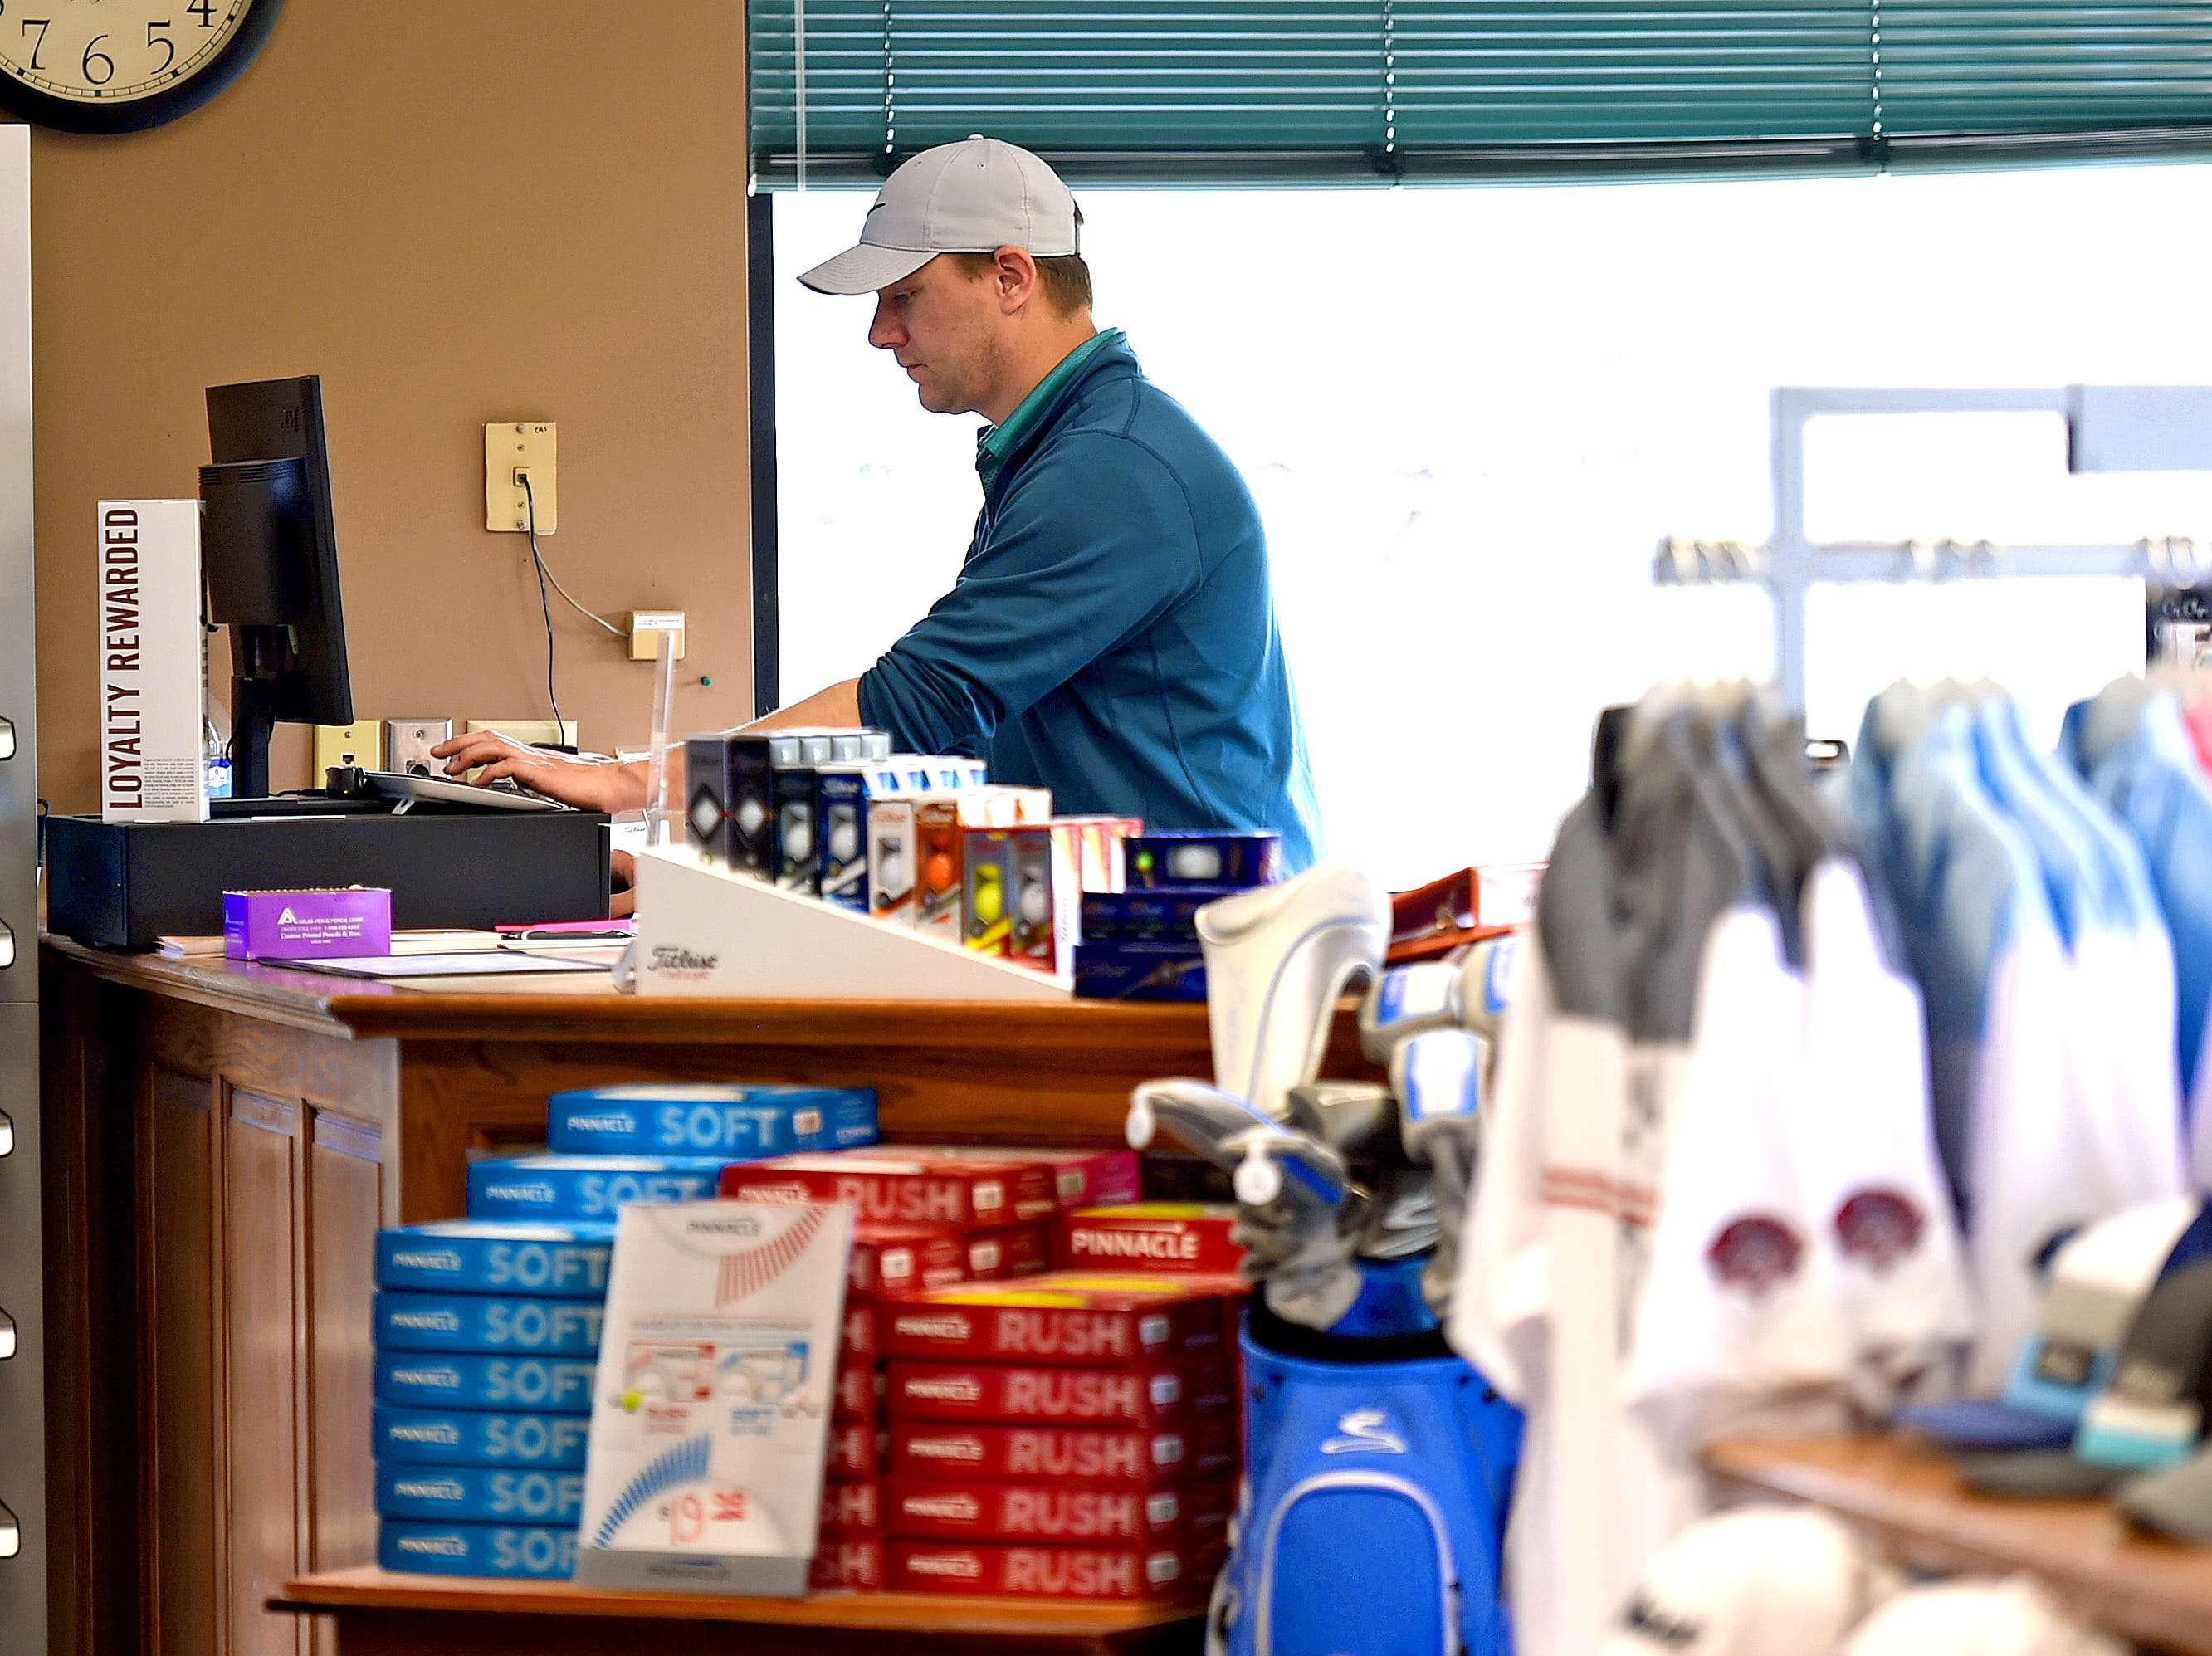 Jason Gozney of Binghamton works in the pro shop at The Links at Hiawatha Landing on Tuesday, April 23, 2019.